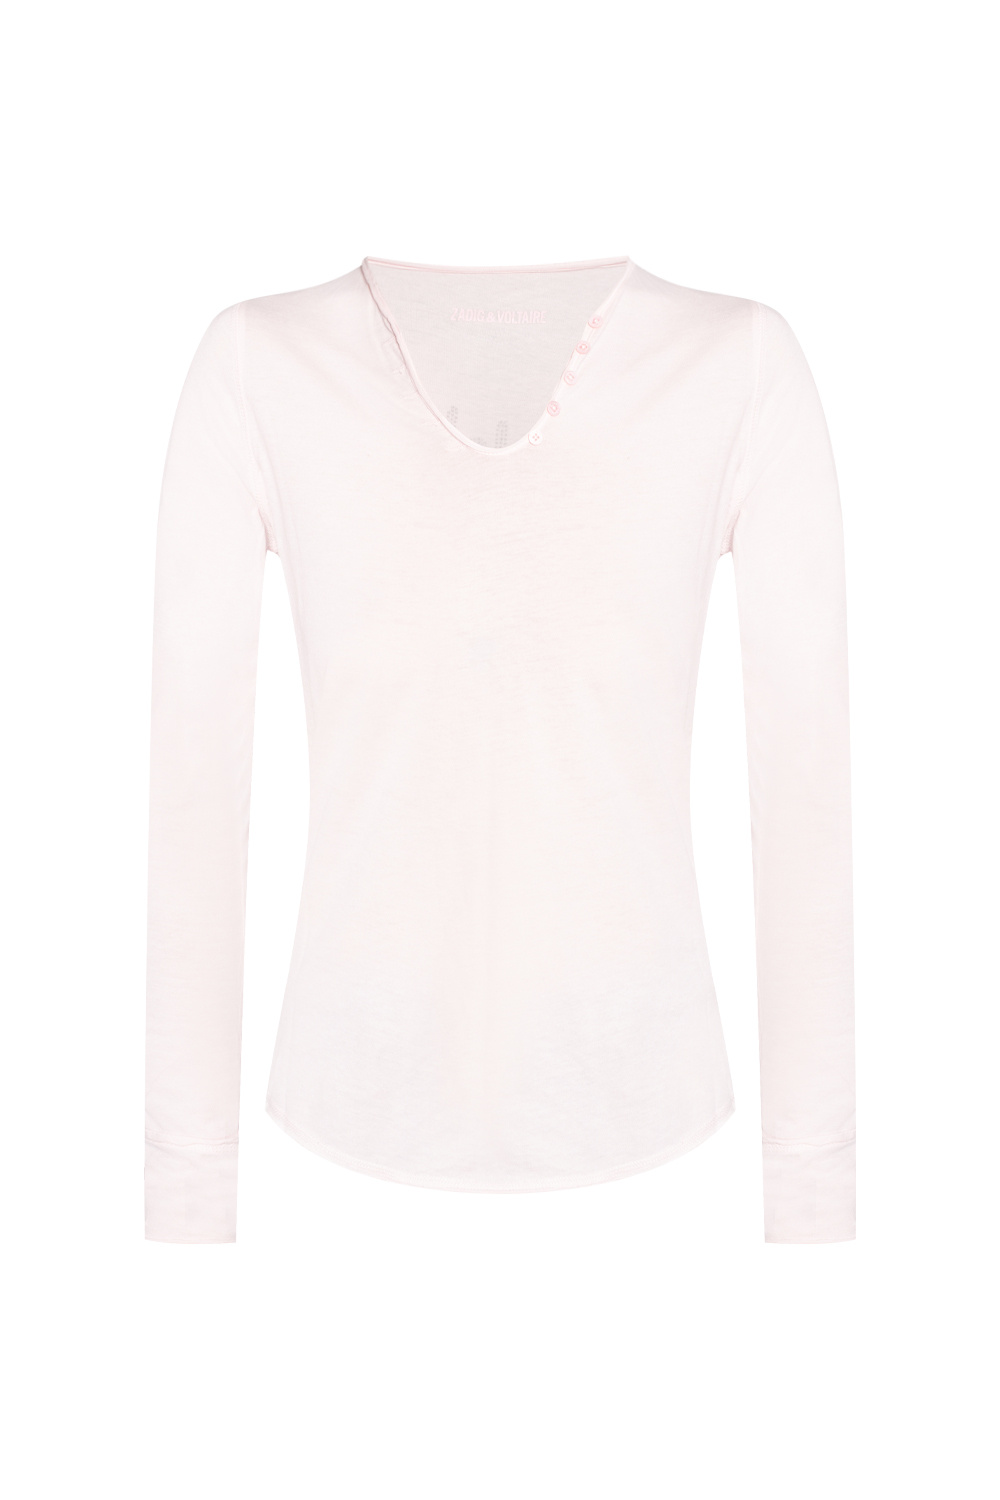 Zadig & Voltaire Top with long sleeves